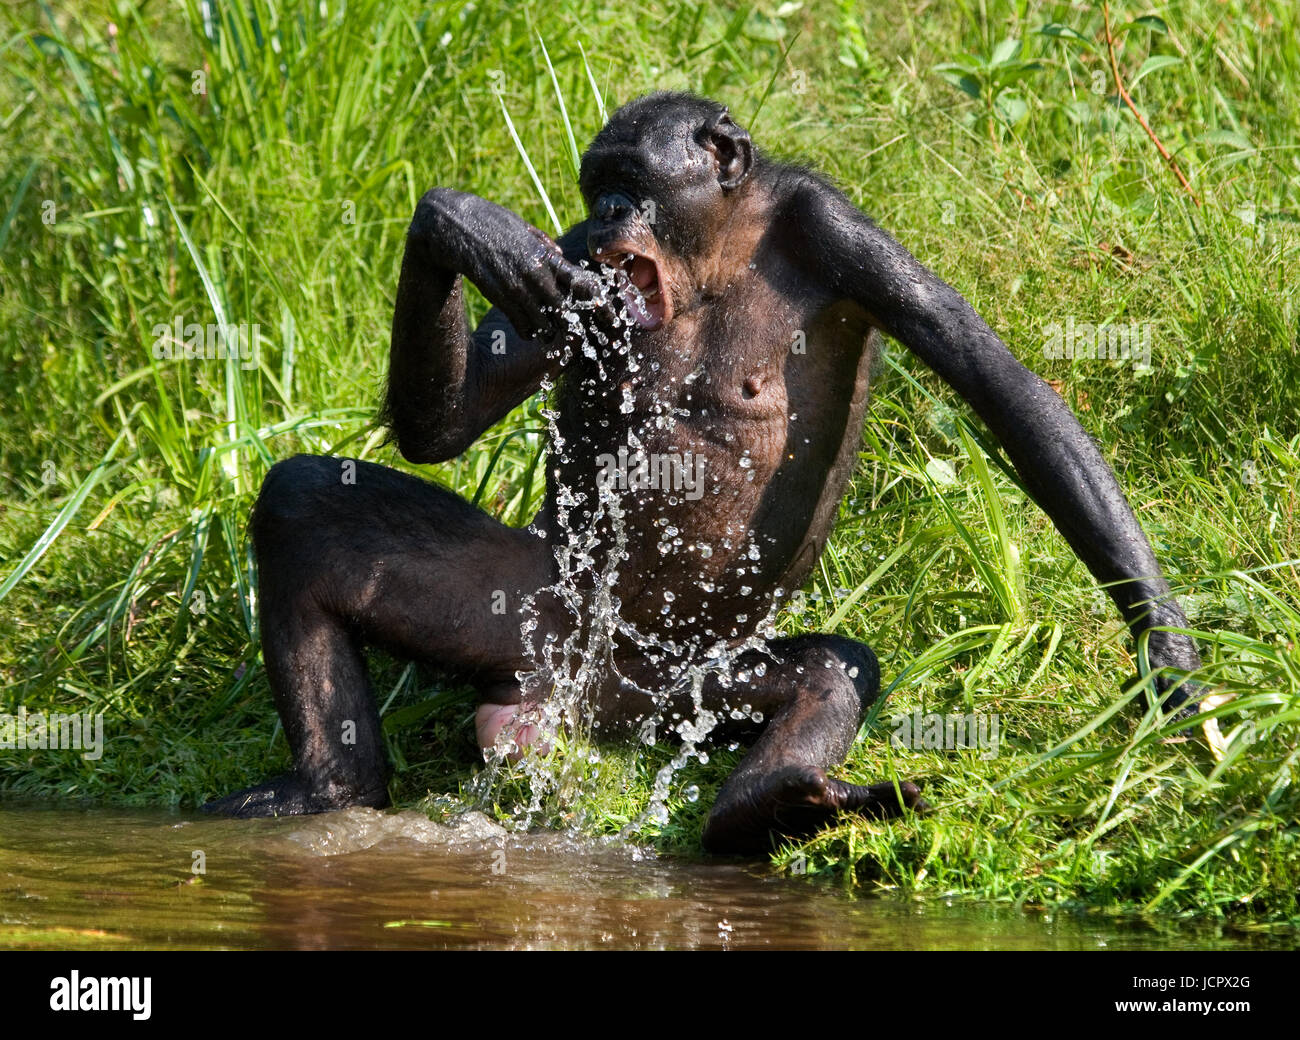 Bonobo playing with water. Democratic Republic of Congo. Lola Ya BONOBO National Park. An excellent illustration. - Stock Image